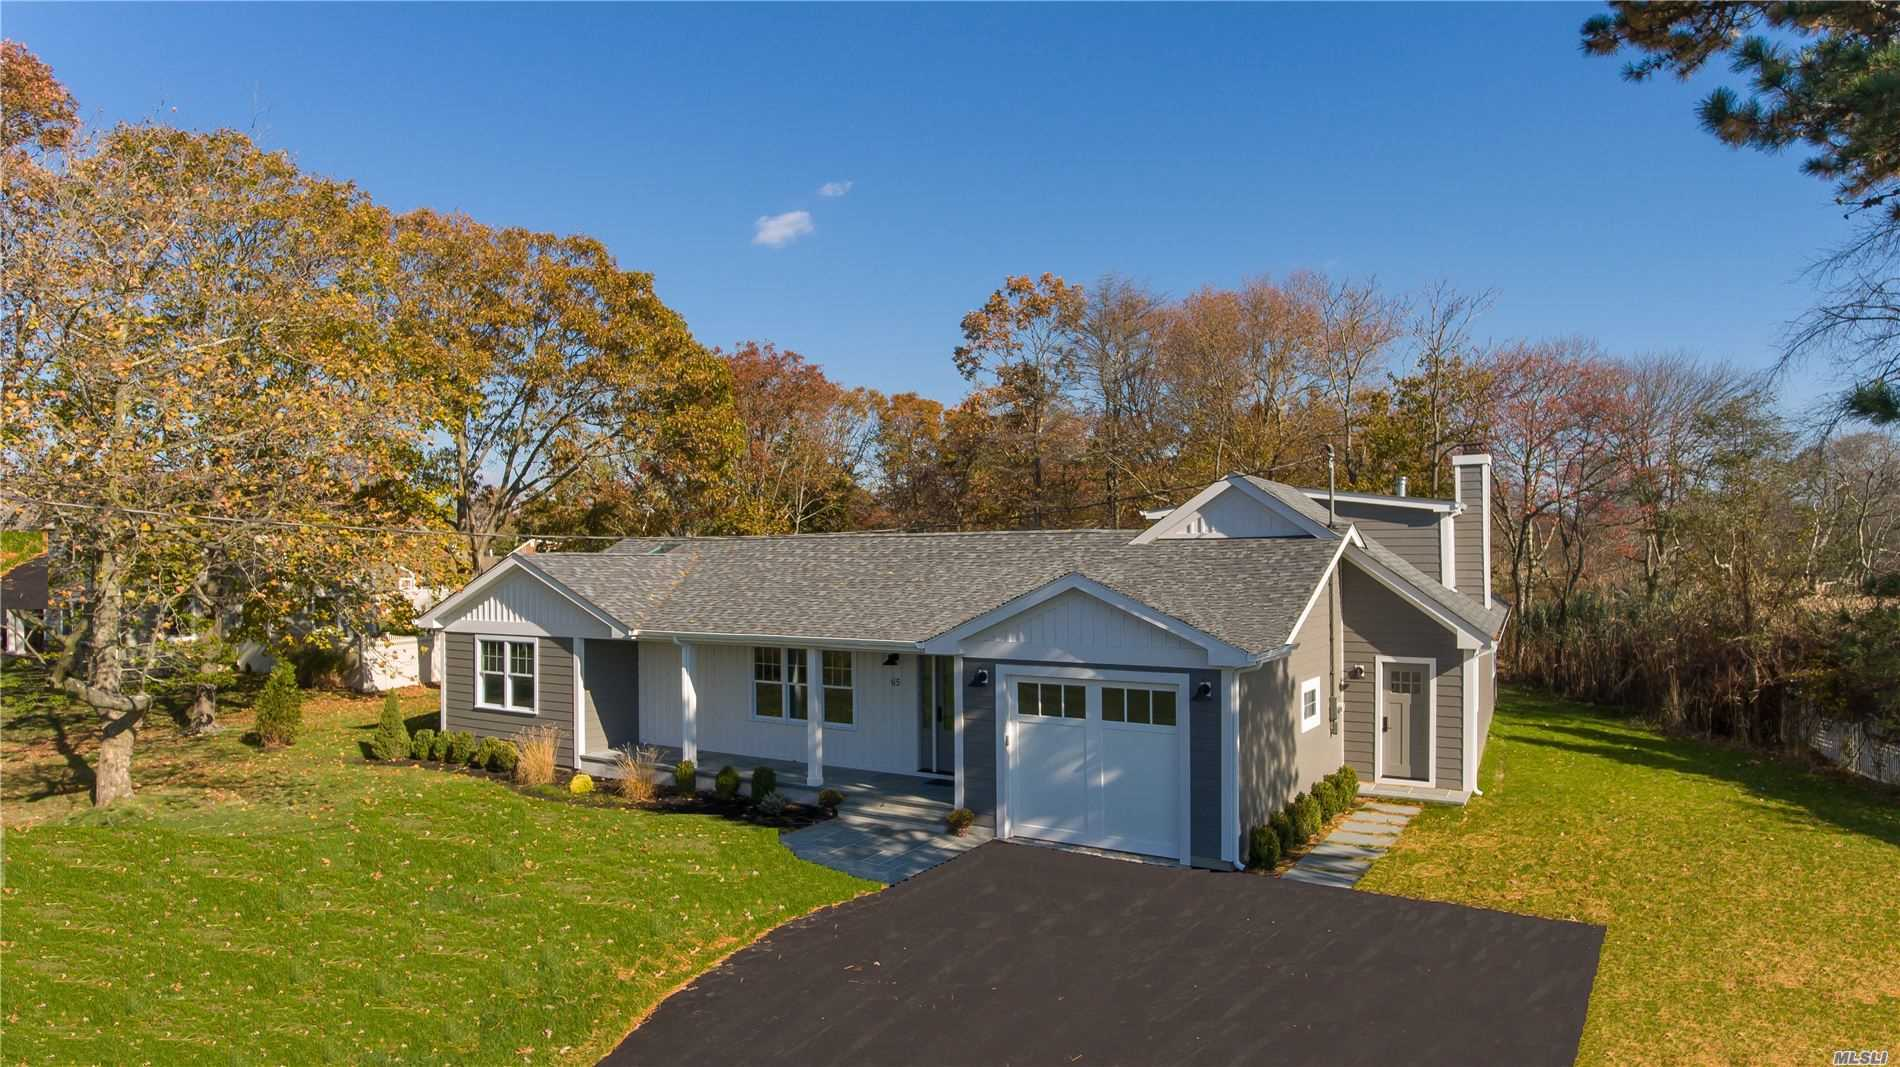 65 Elder Rd 11751 - One of Islip Homes for Sale